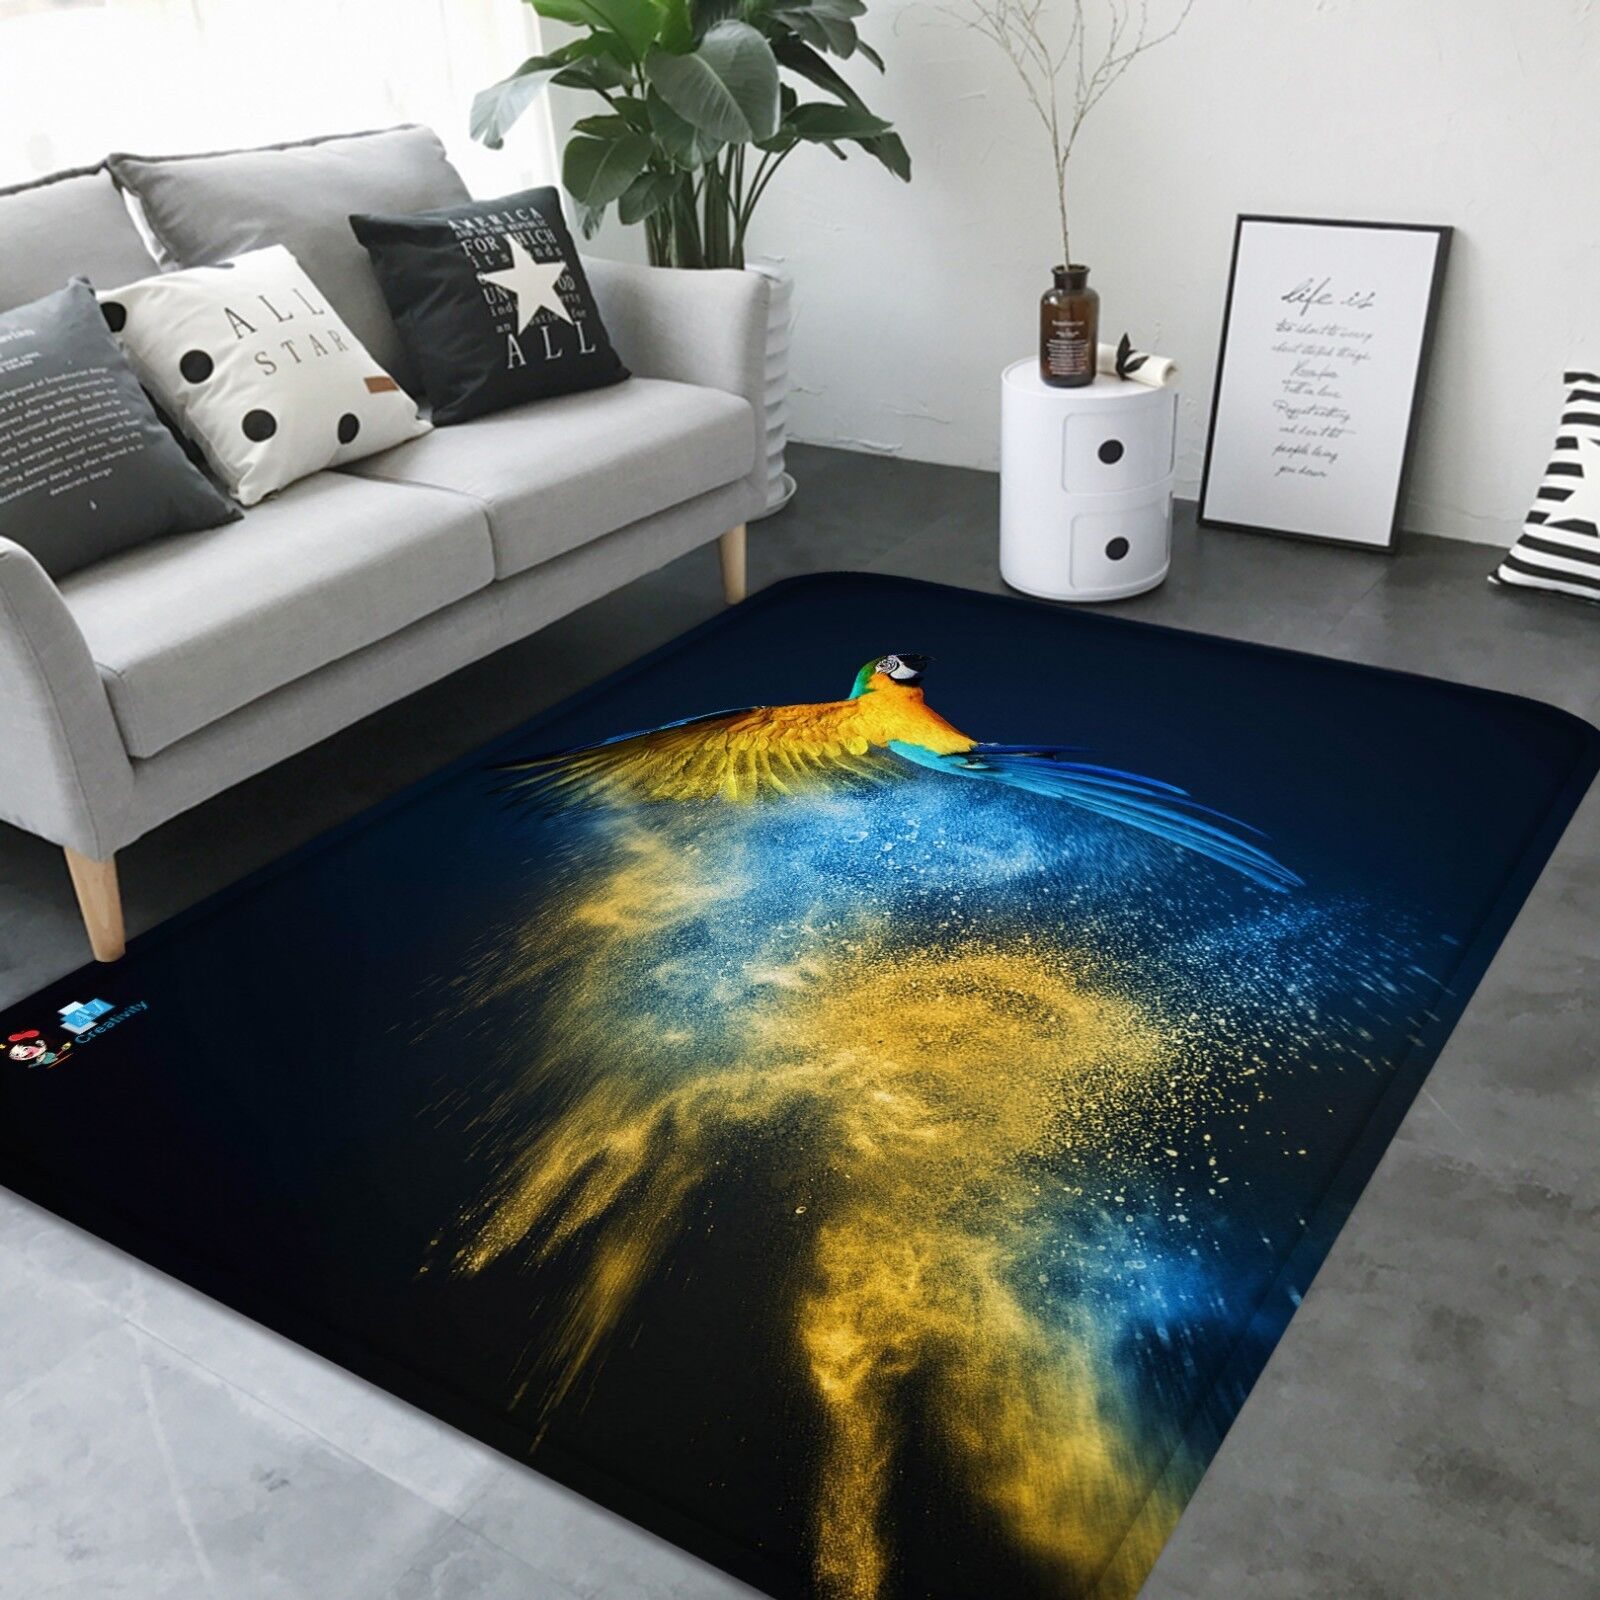 3D Parrosso Animal 004 Non Slip Rug Mat Quality Elegant Photo Carpet US Carly